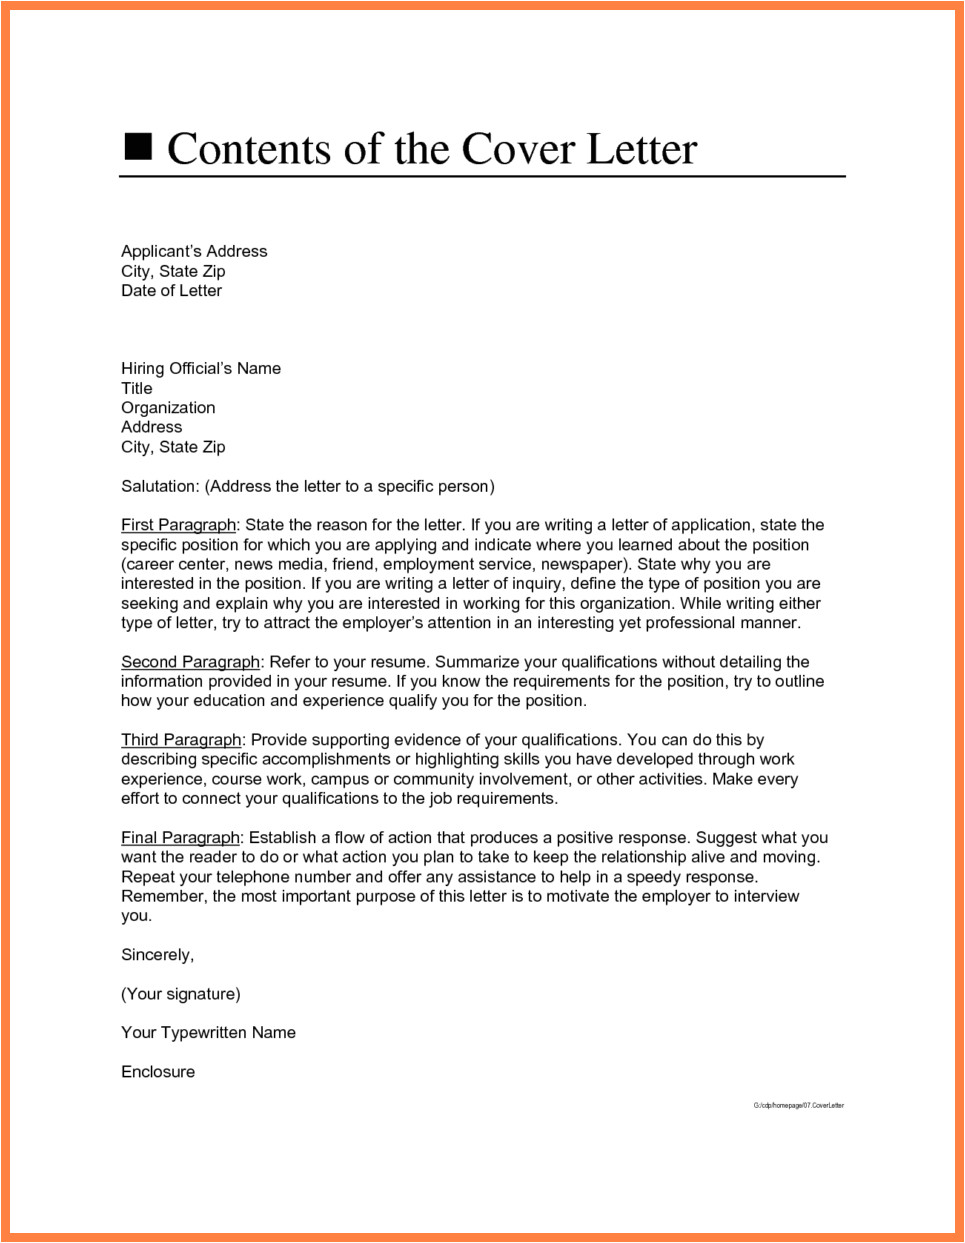 How Should A Cover Letter Be Addressed 5 Cover Letter Address Marital Settlements Information